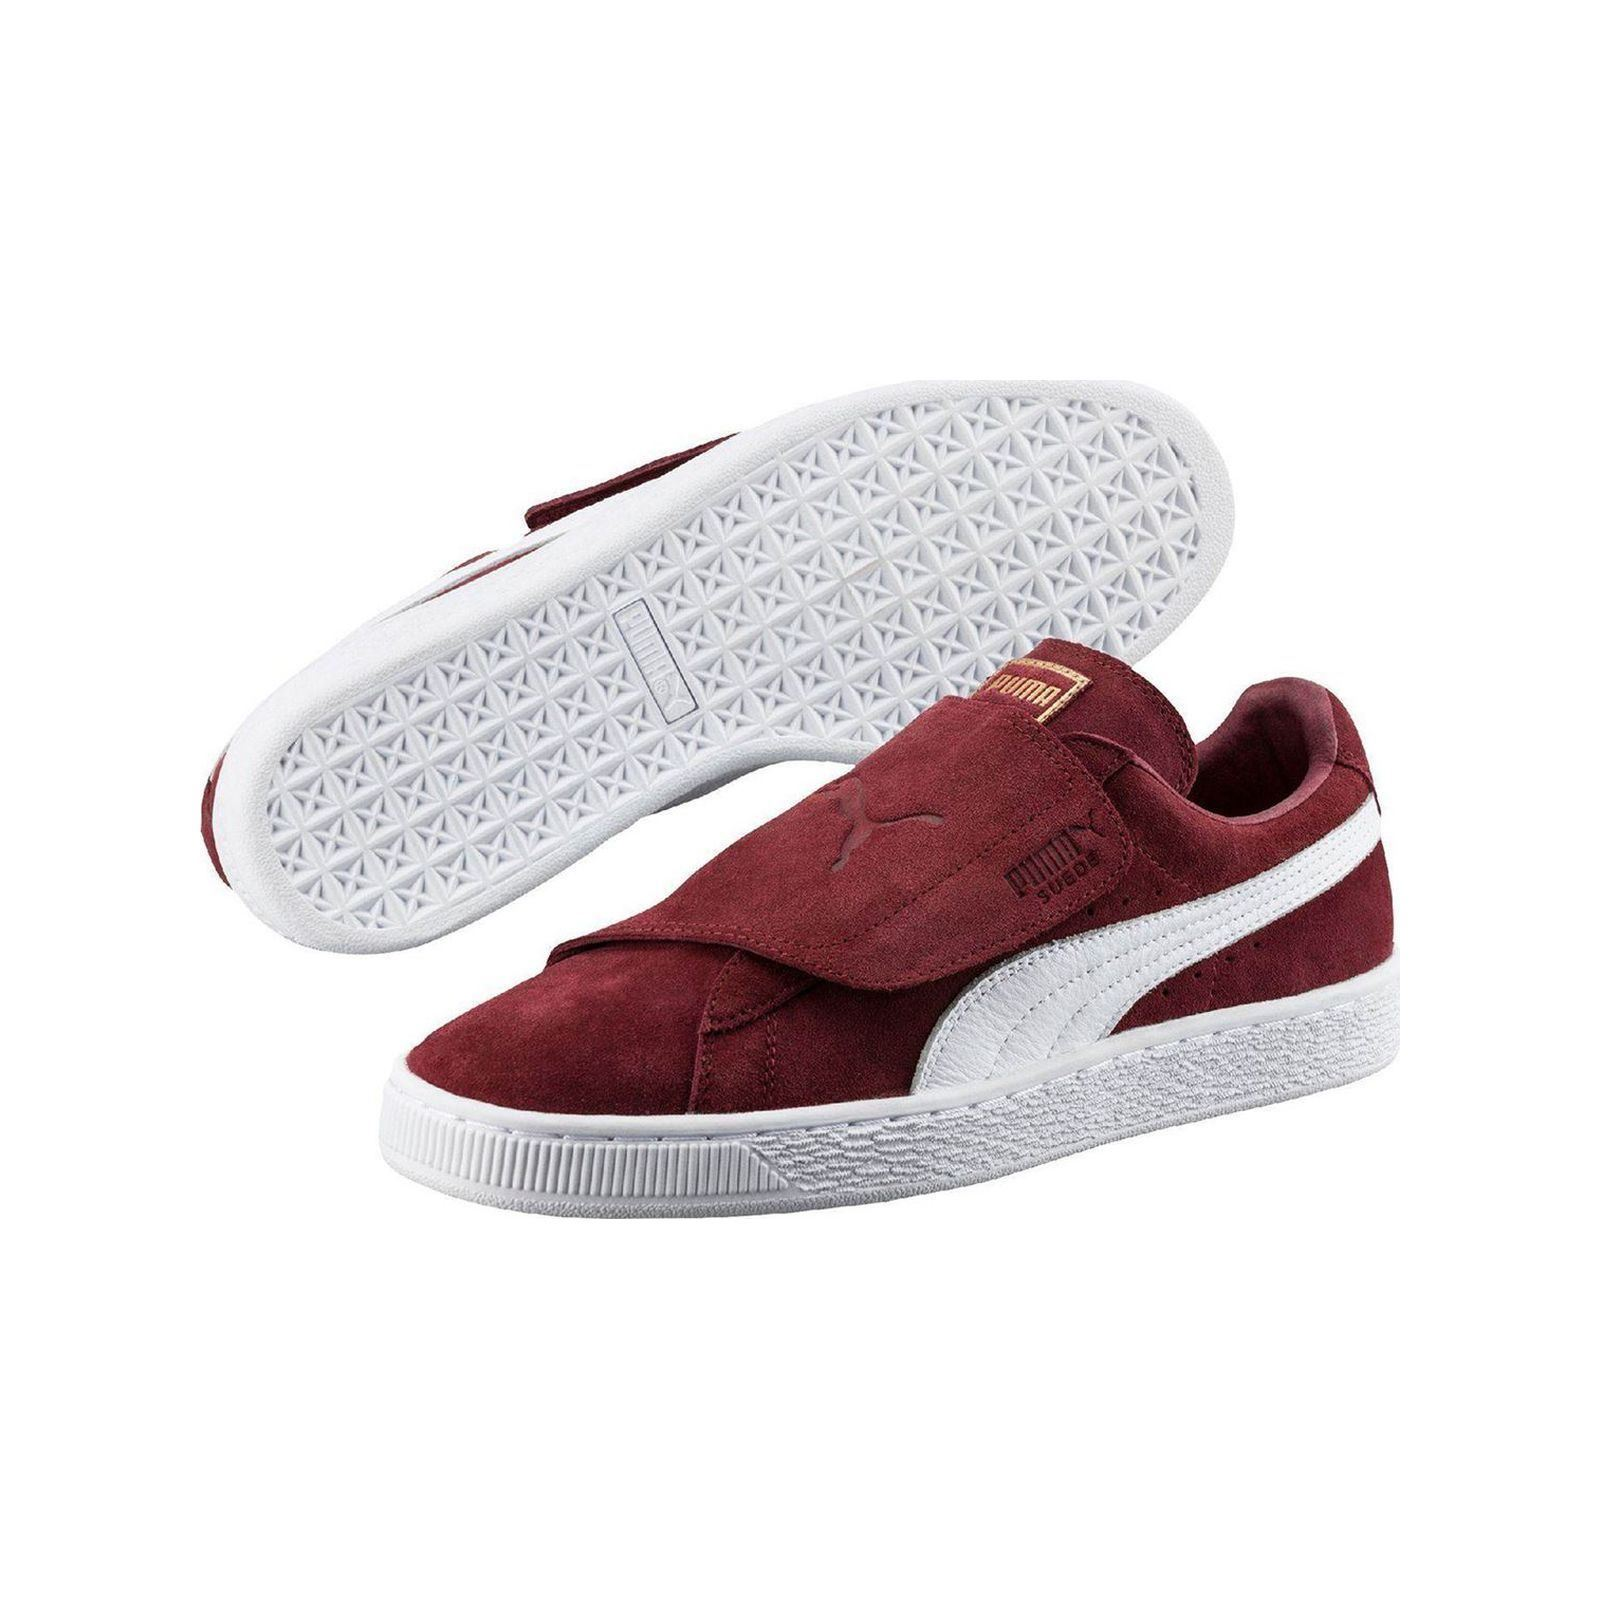 Puma Suede Strap - Baskets - bordeaux